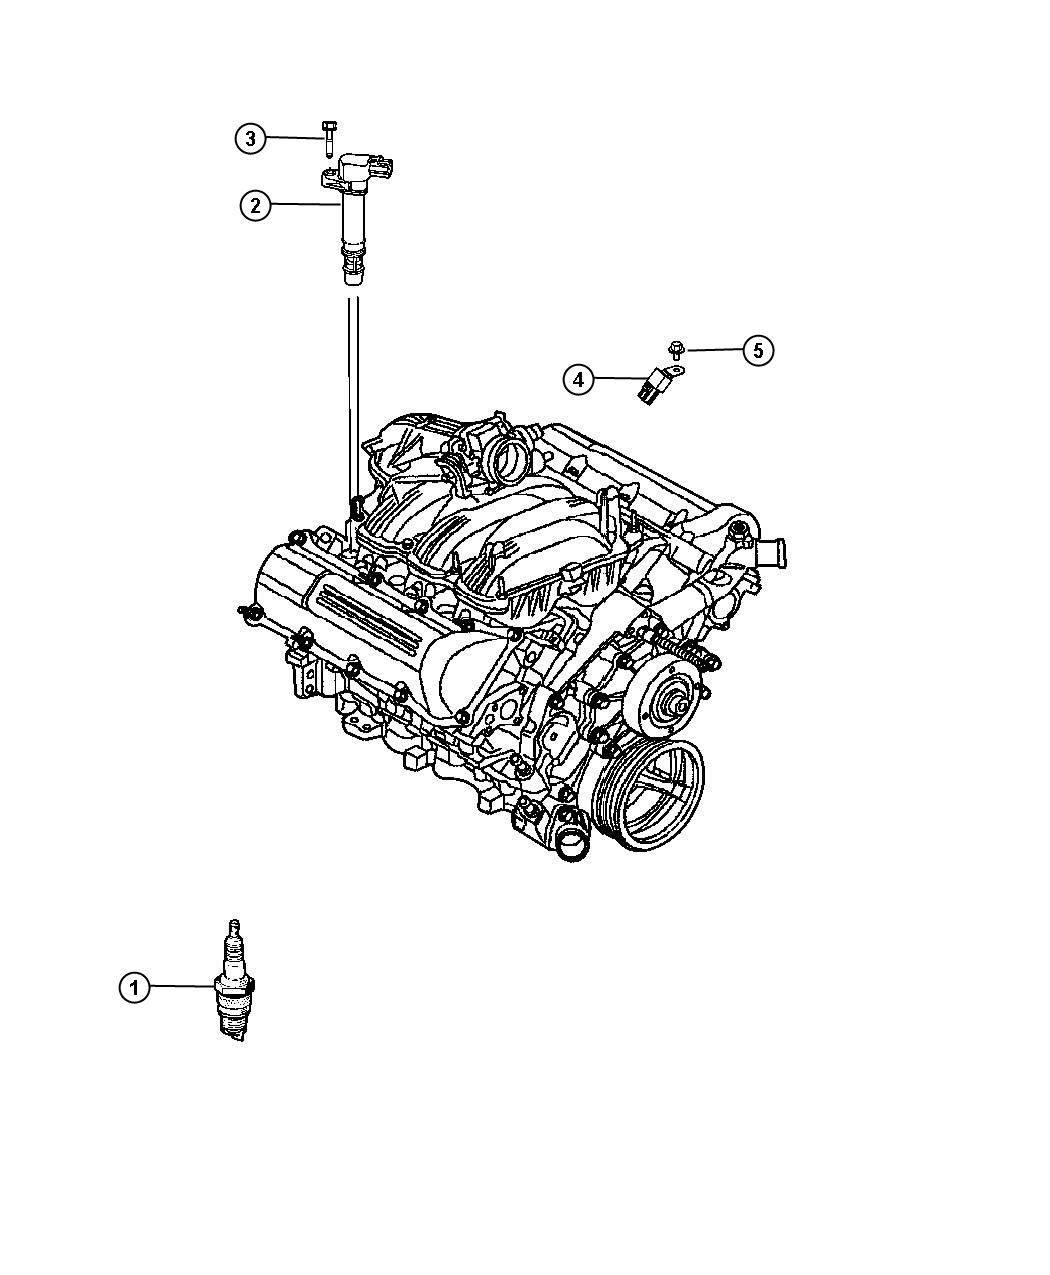 Ford Ignition Coil Pack Wiring Diagram